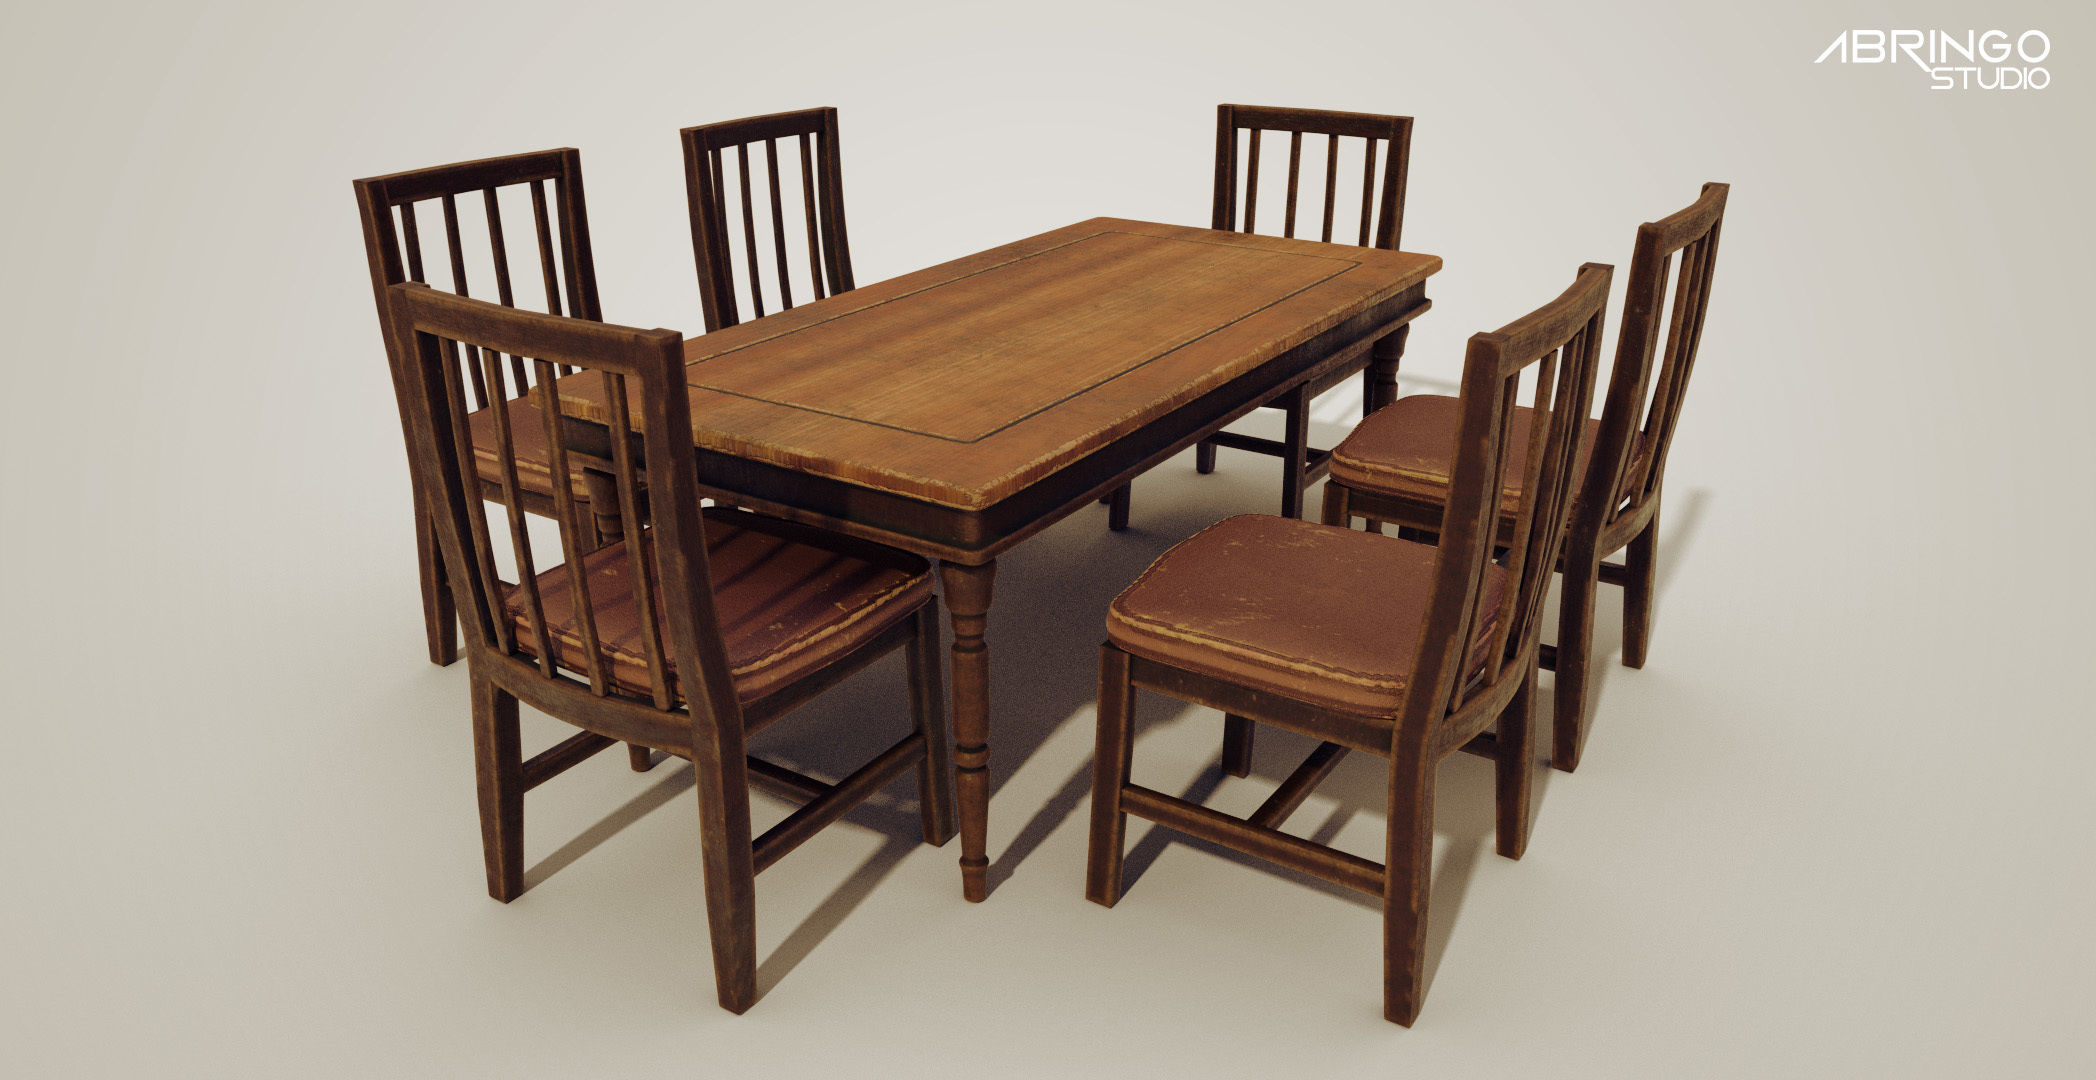 Wood table and chair sets